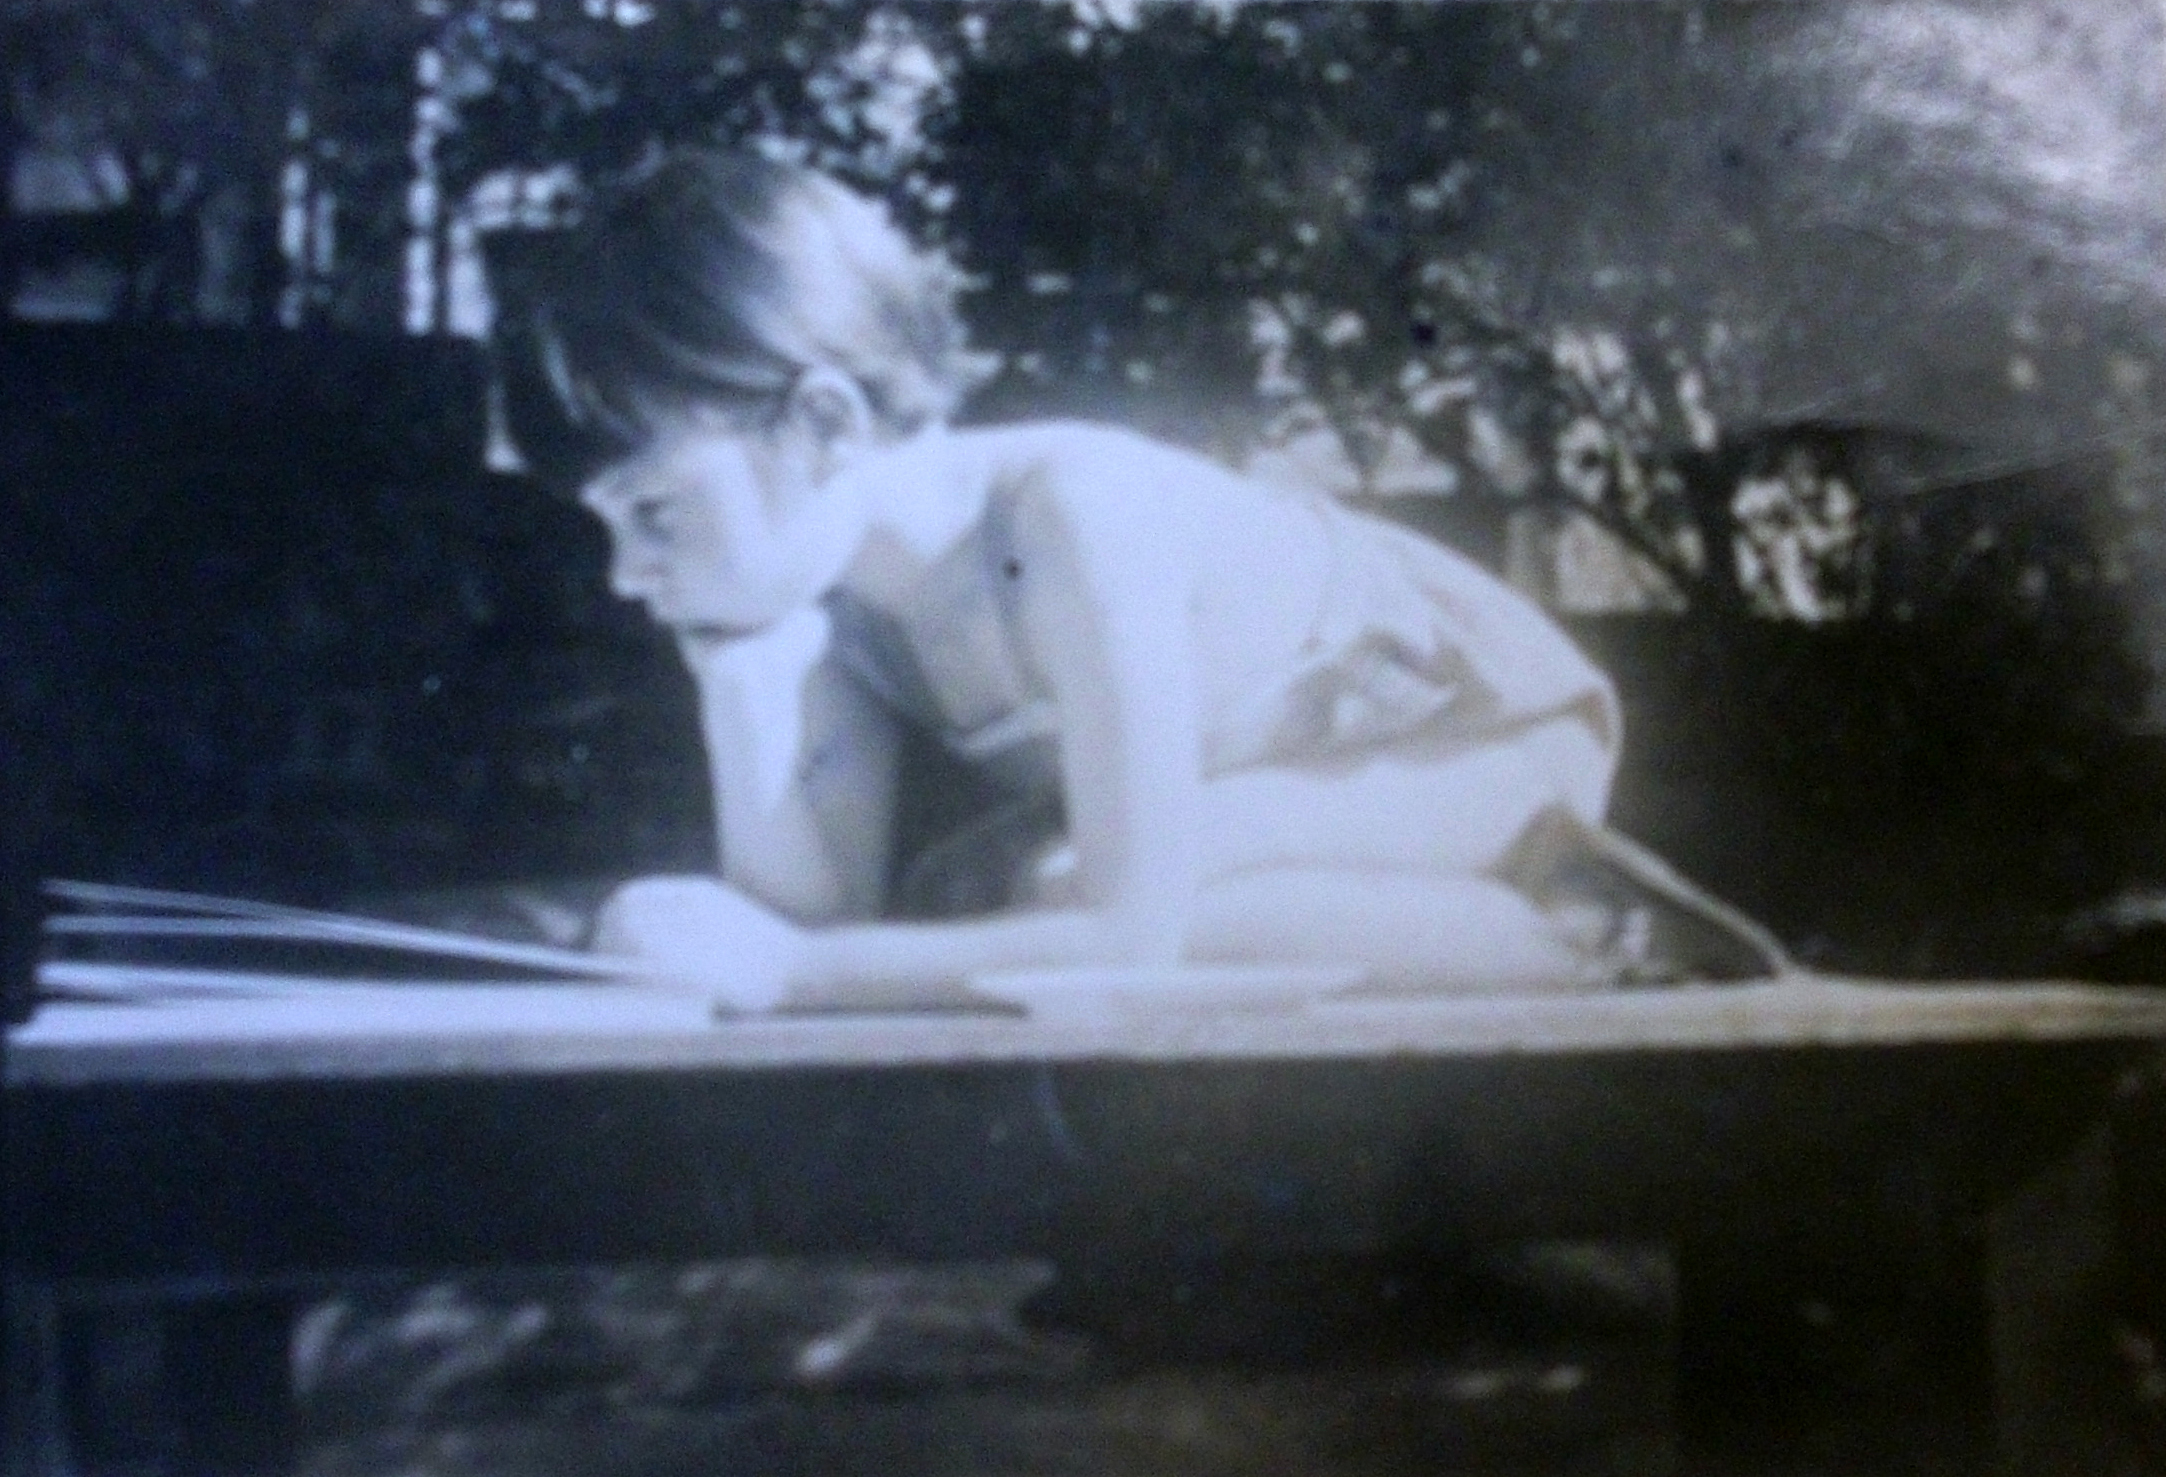 Jay Macpherson reading as a child. Photo courtesy of the P.K. Page papers at Library and Archives Canada, with permission from Zailig Pollock and Diana Macpherson.